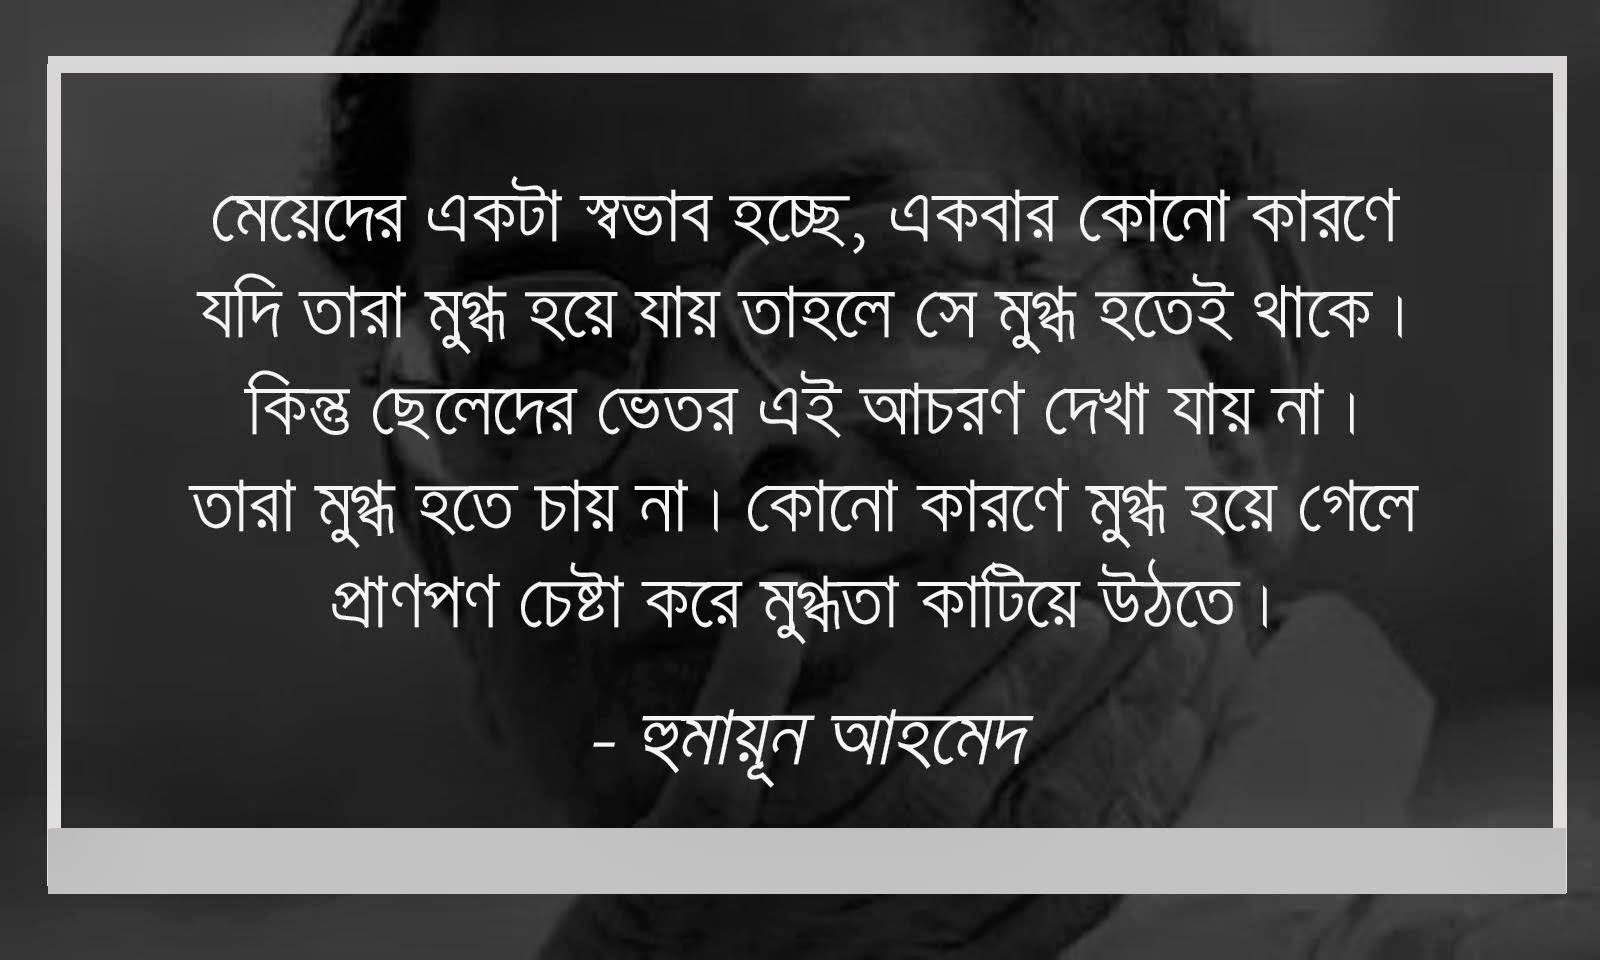 Moral Quotes About Love 101 Bangla Quotes To Inspire Love Live Struggle & Motivate